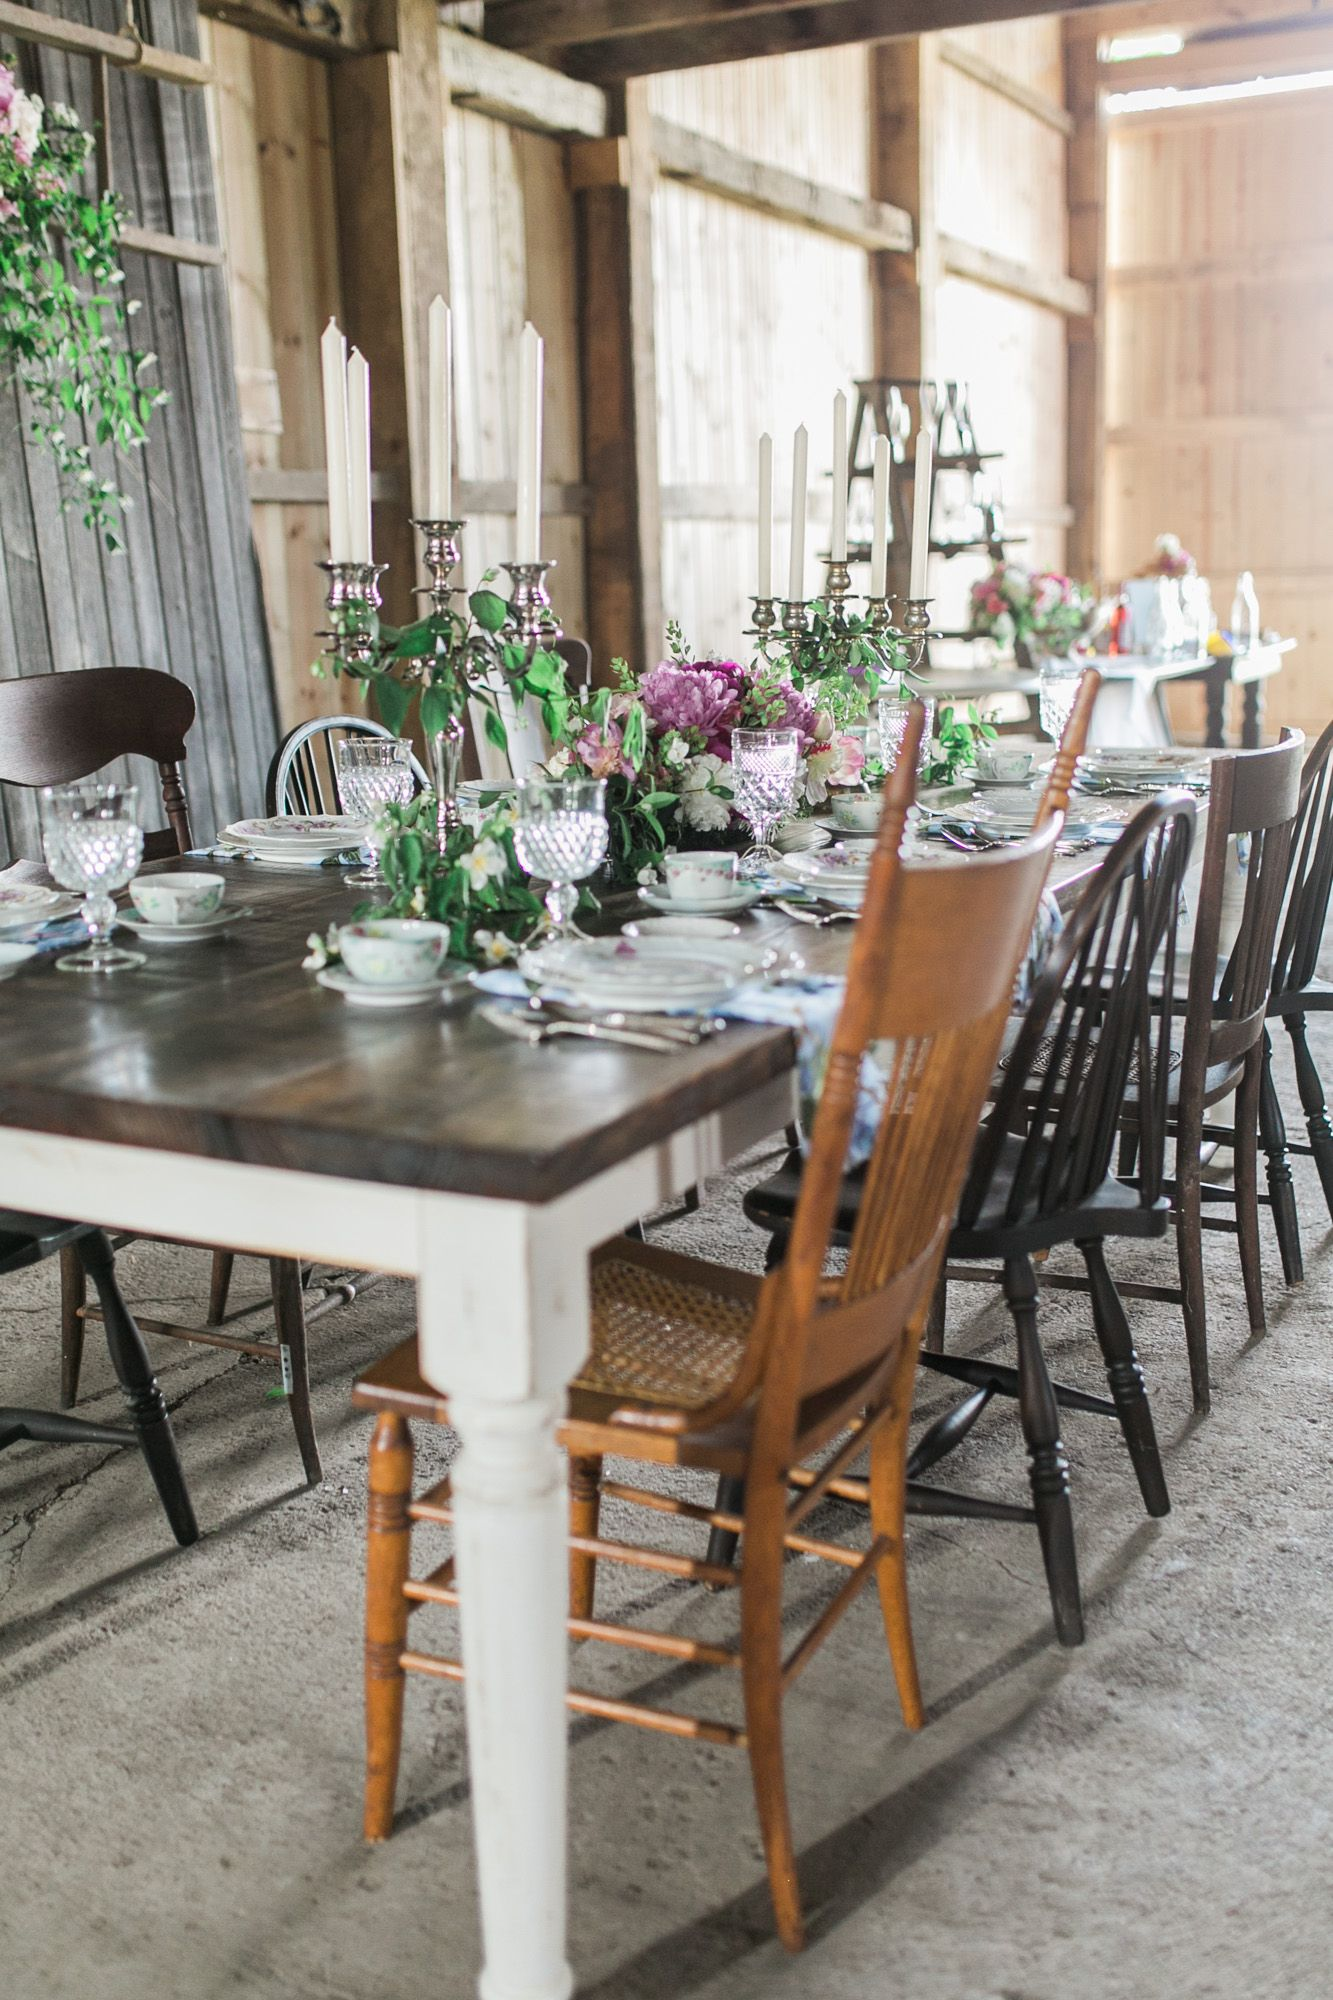 pin by black bird farm on boho chic stylized shoot table dining table chic on boho chic kitchen table decor id=86945